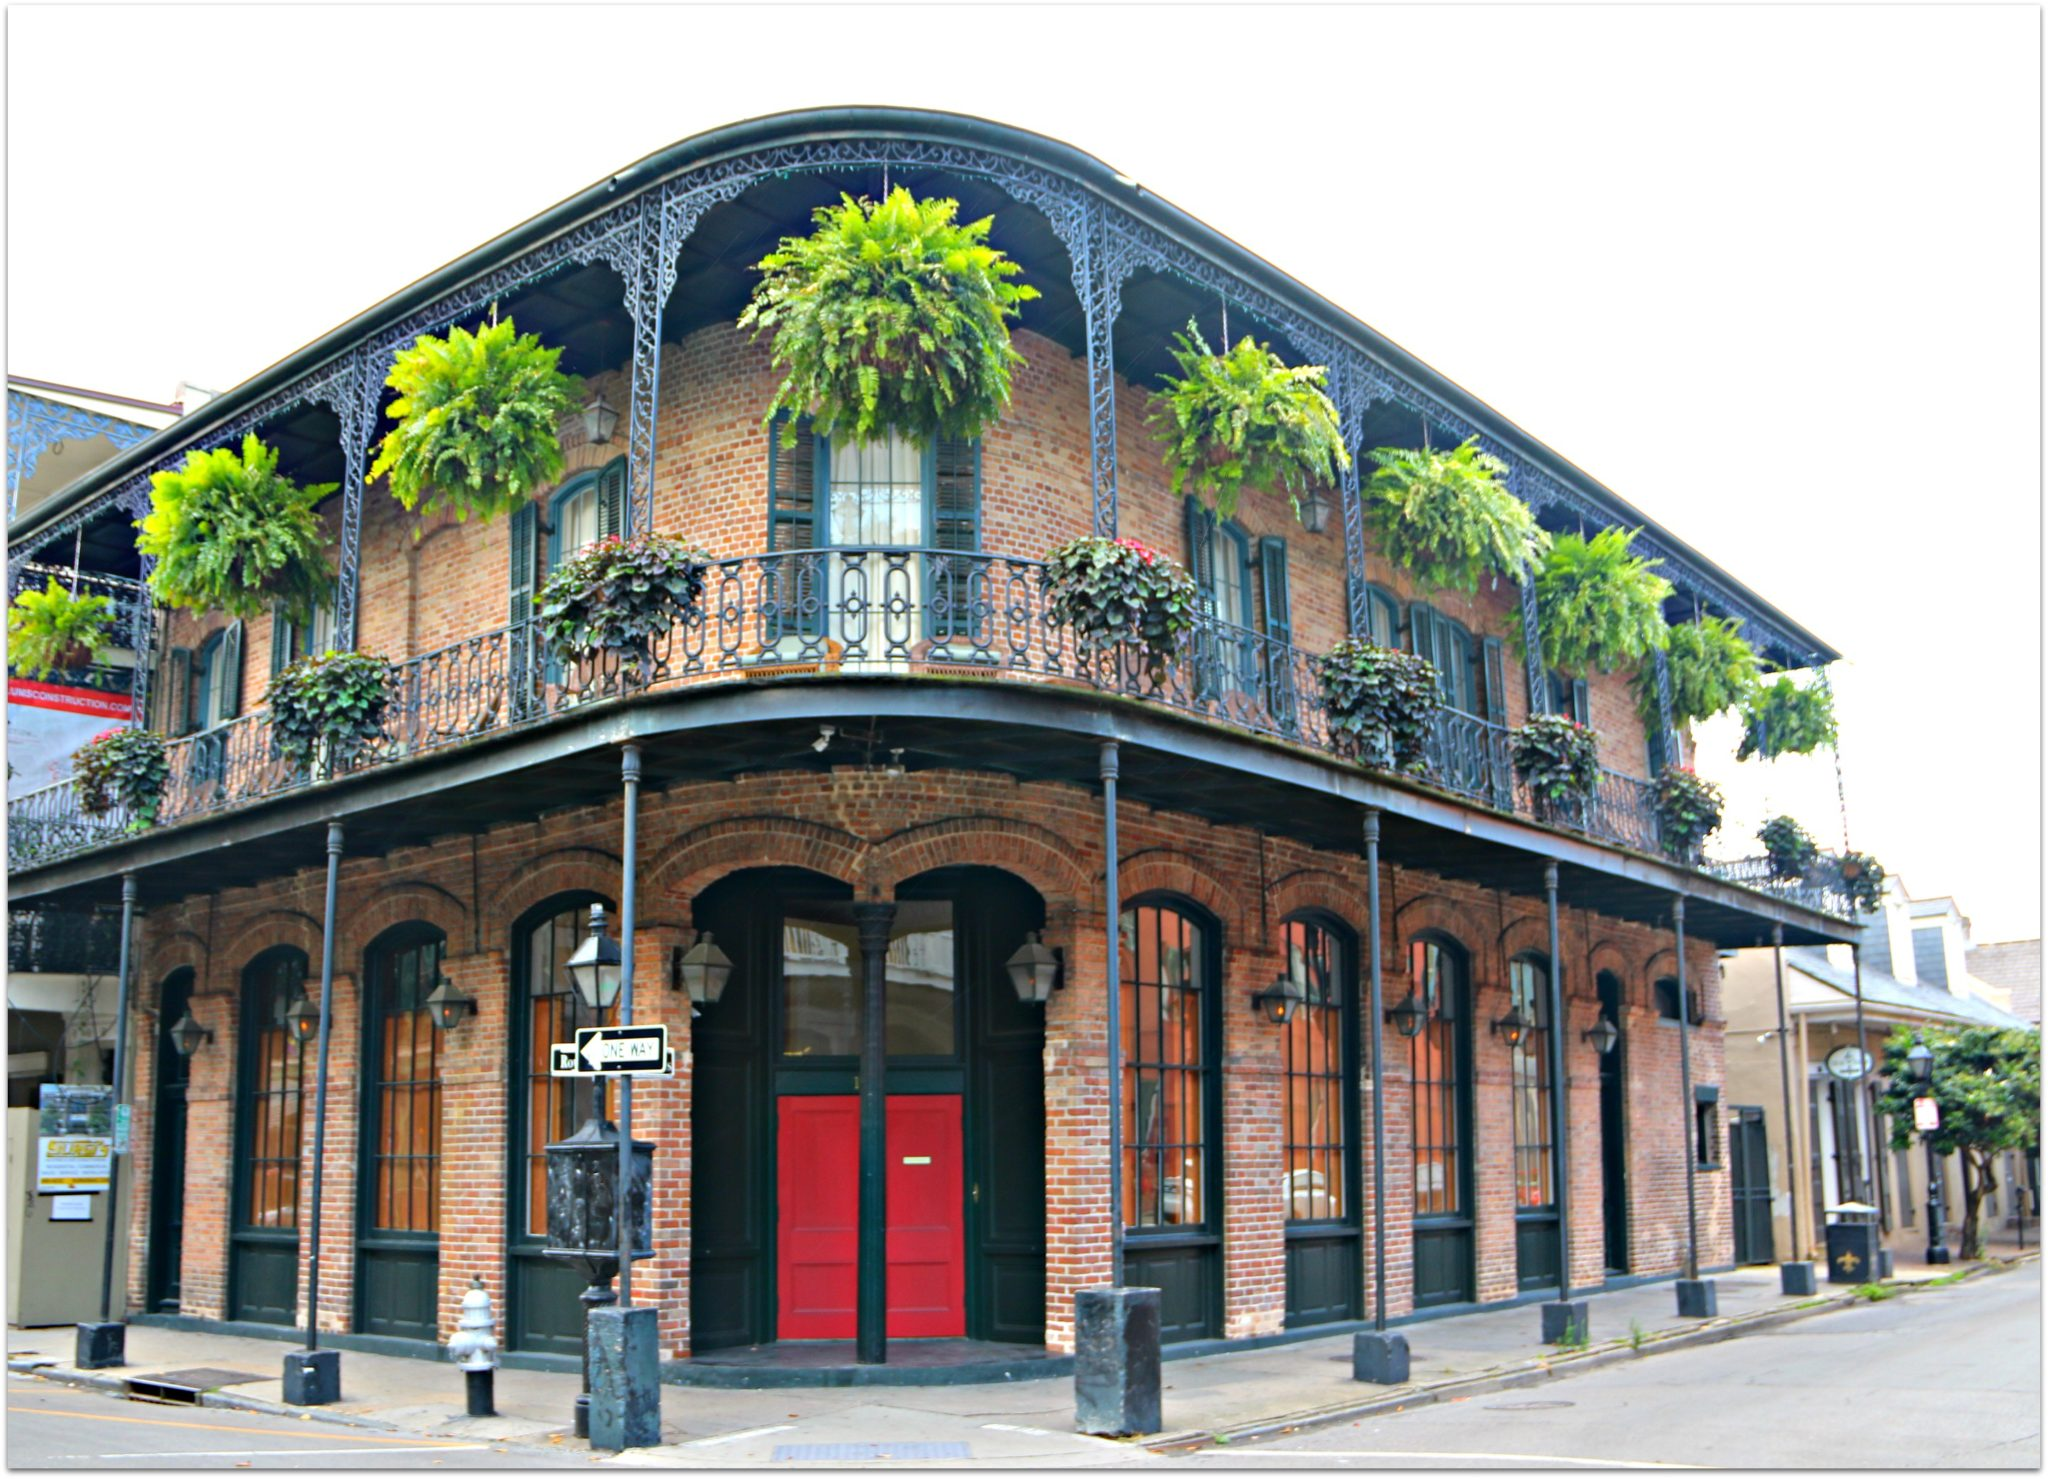 Royal Street Condos in New Orleans